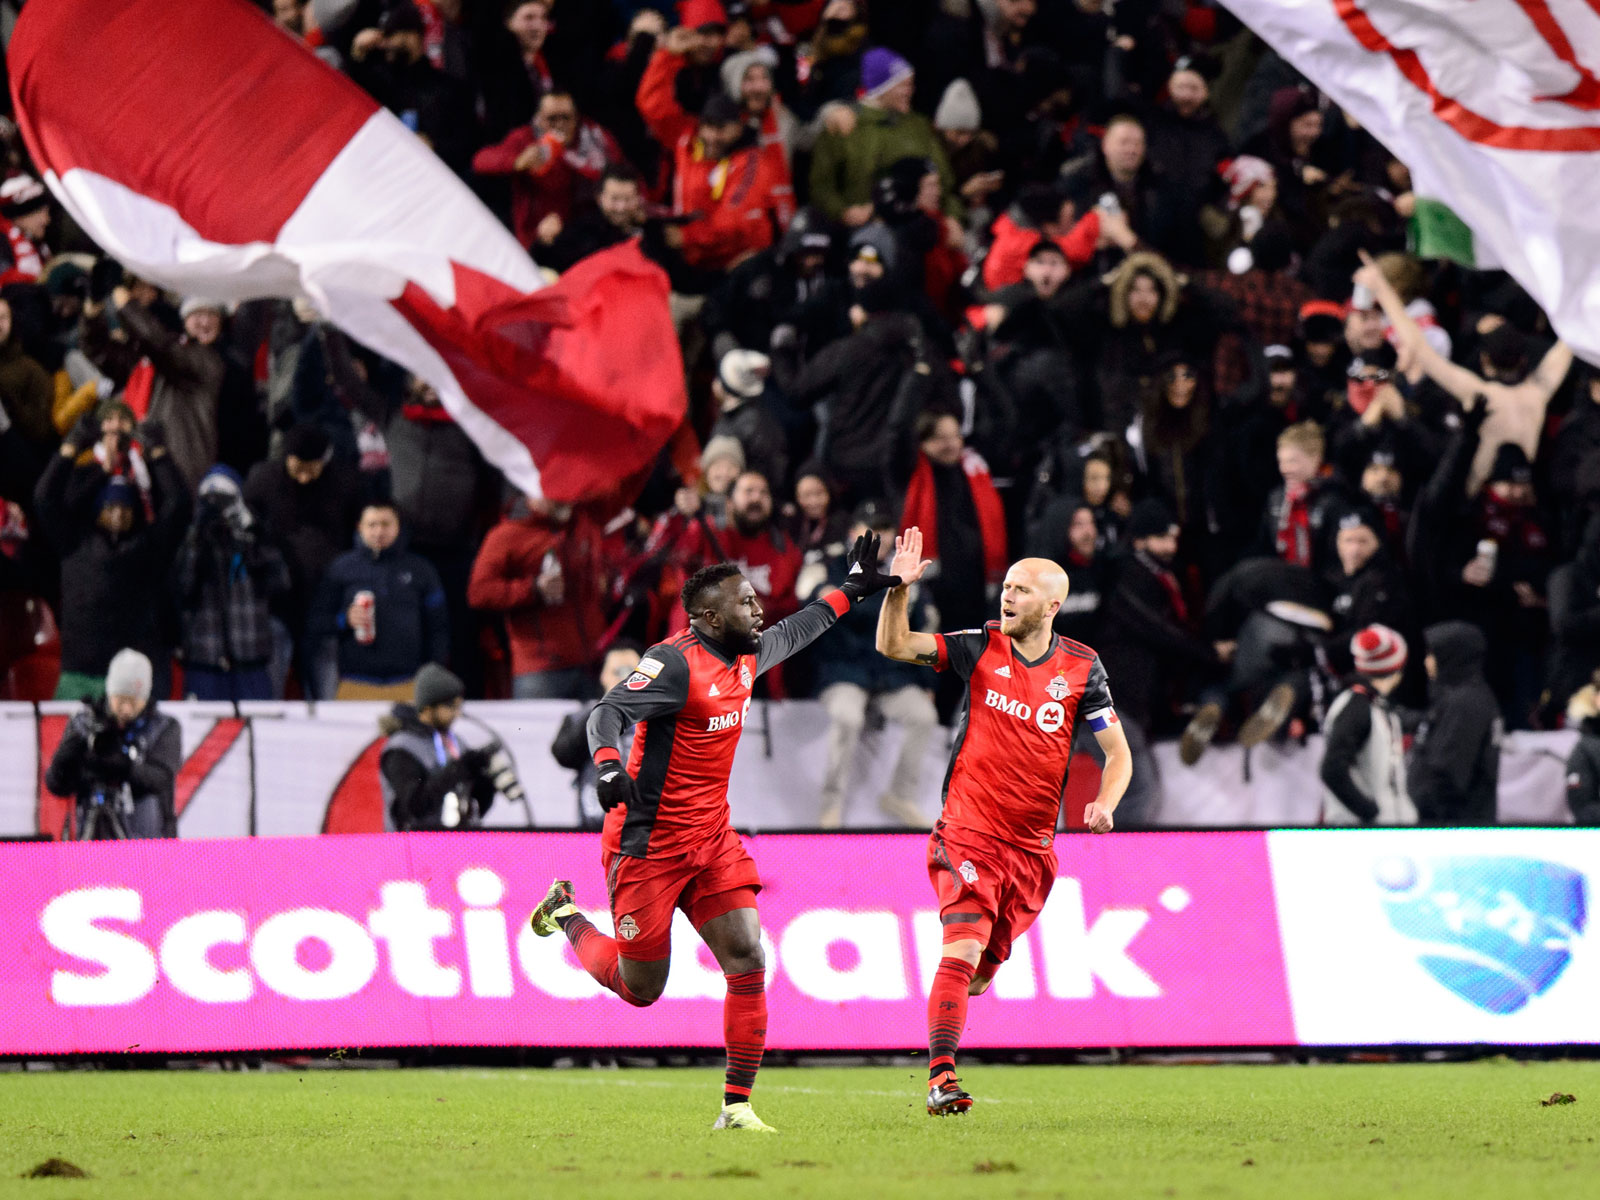 Jozy Altidore and Michael Bradley have led Toronto FC in the CCL